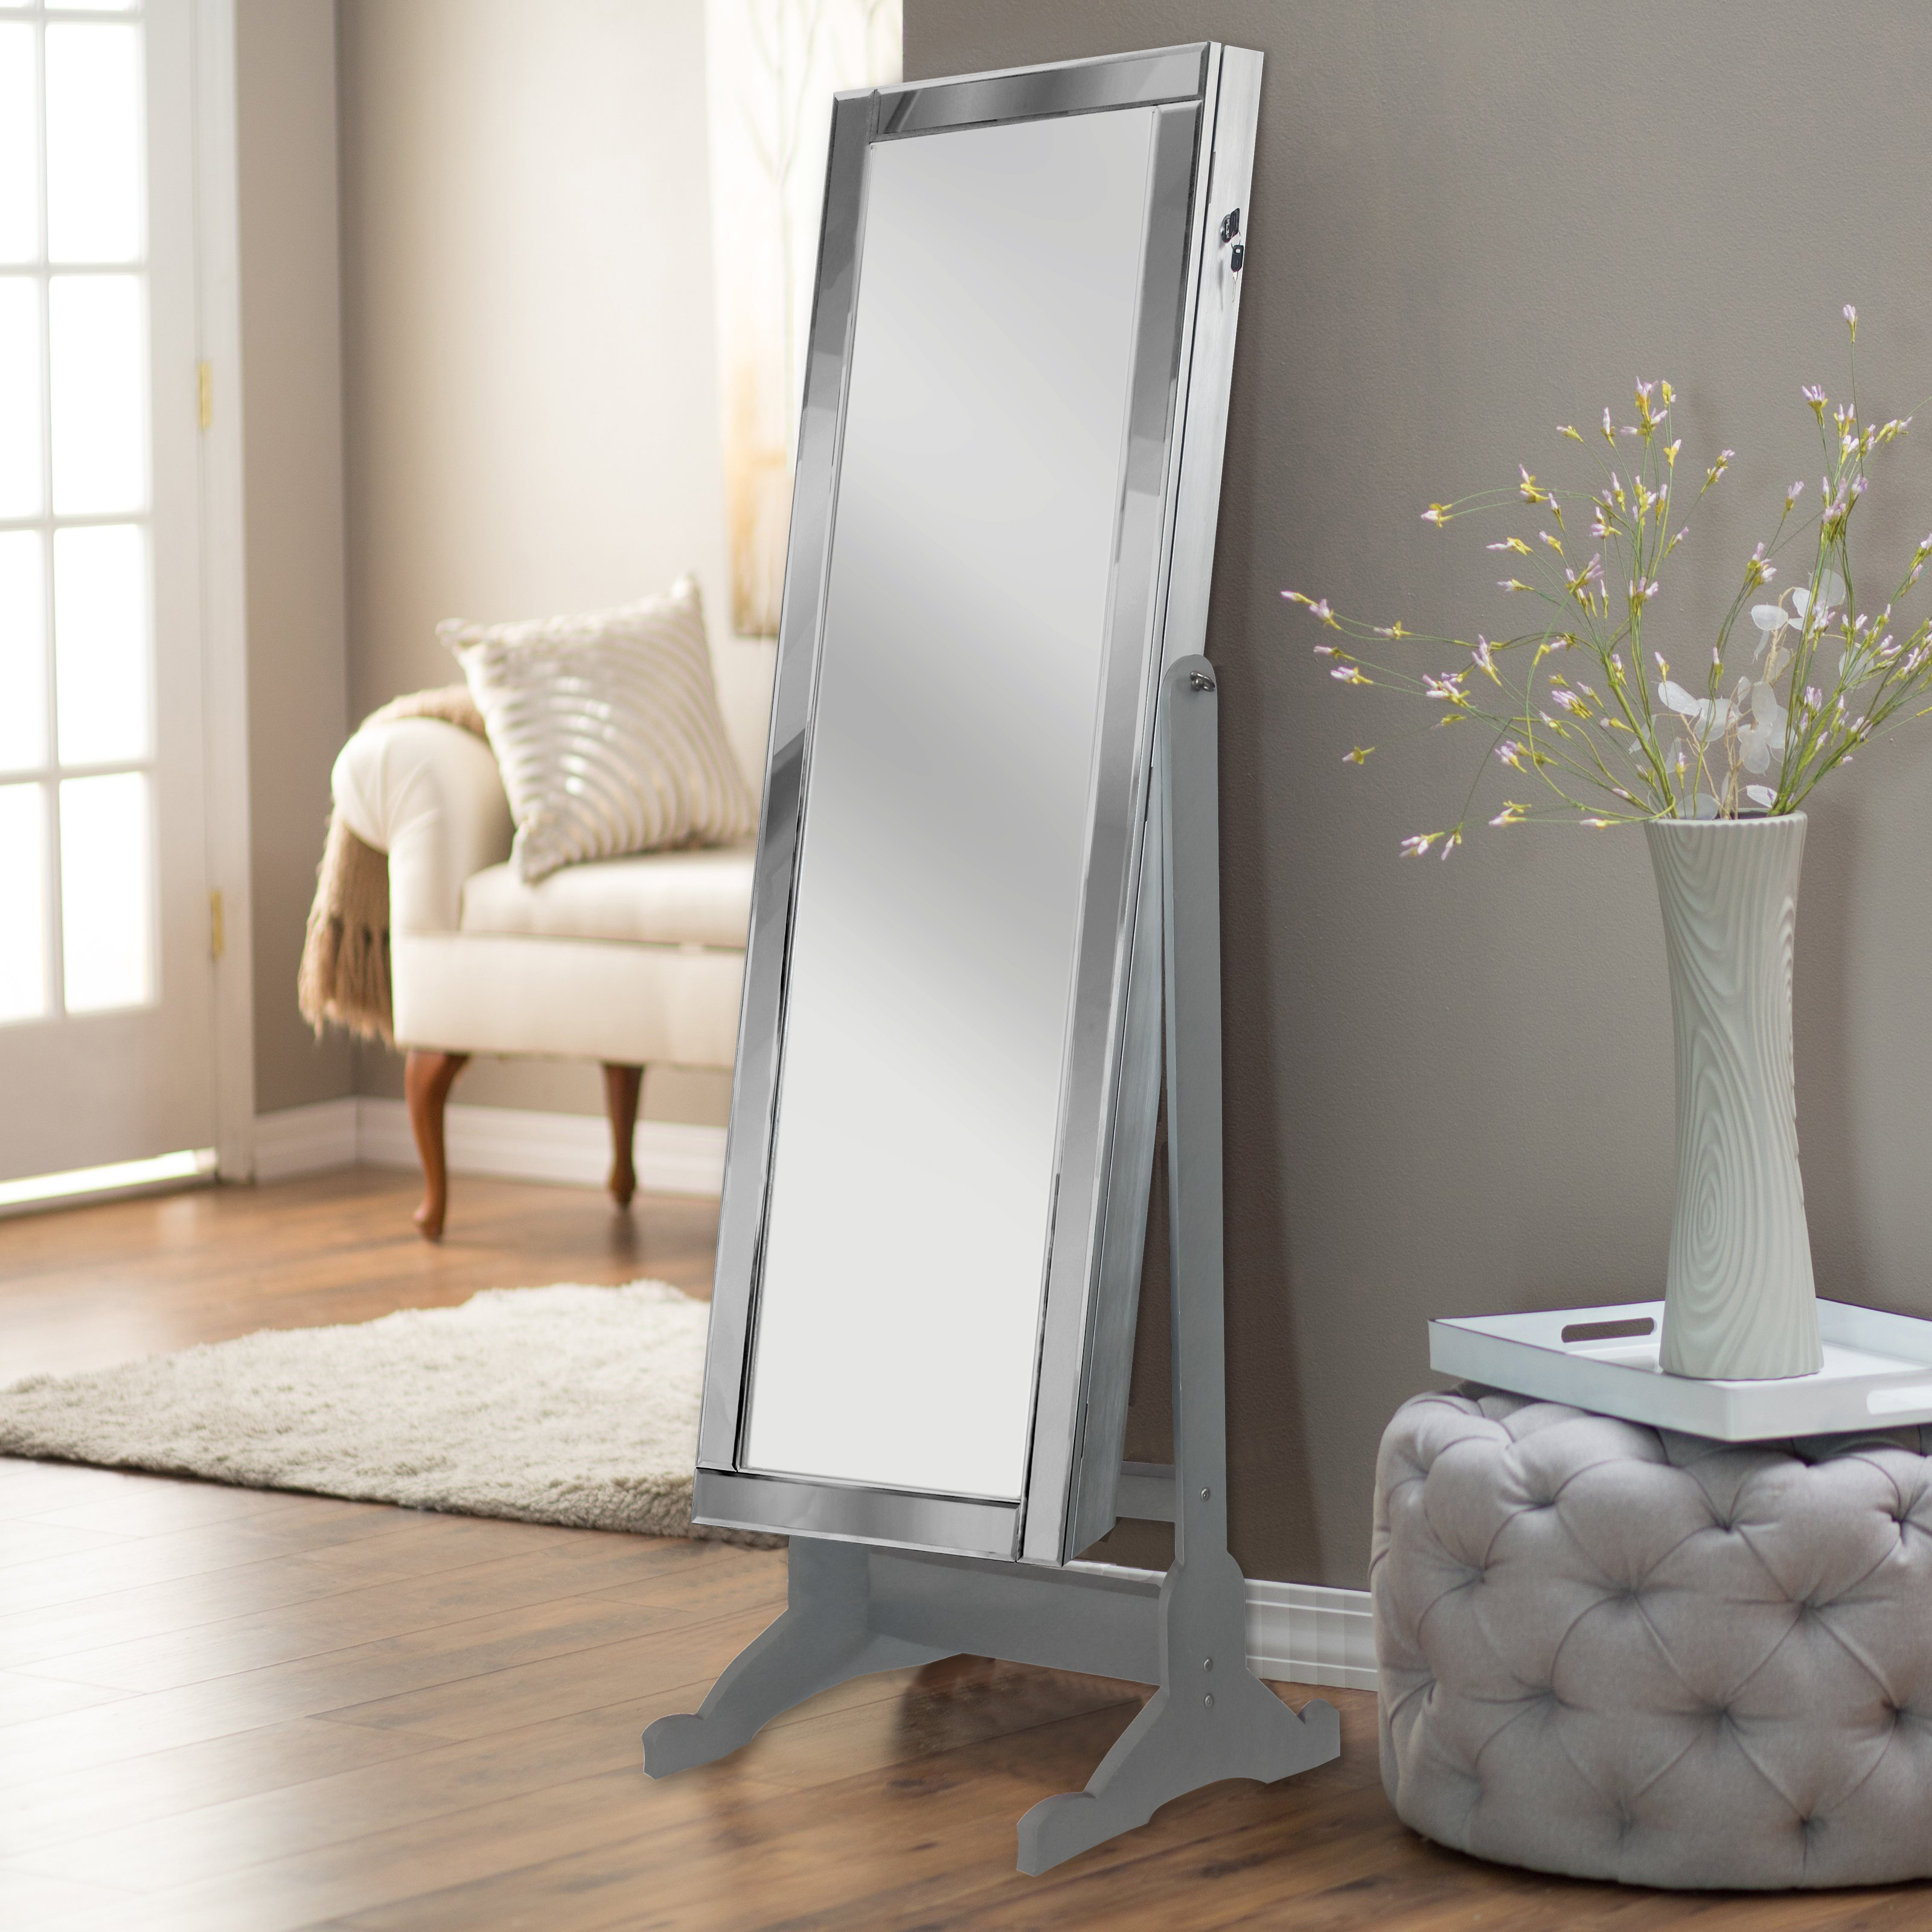 Chic Home Daze Modern Contemporary Mirror Border Rectangular Jewelry Armoire Cheval Mirror, Full-length Classic Silver